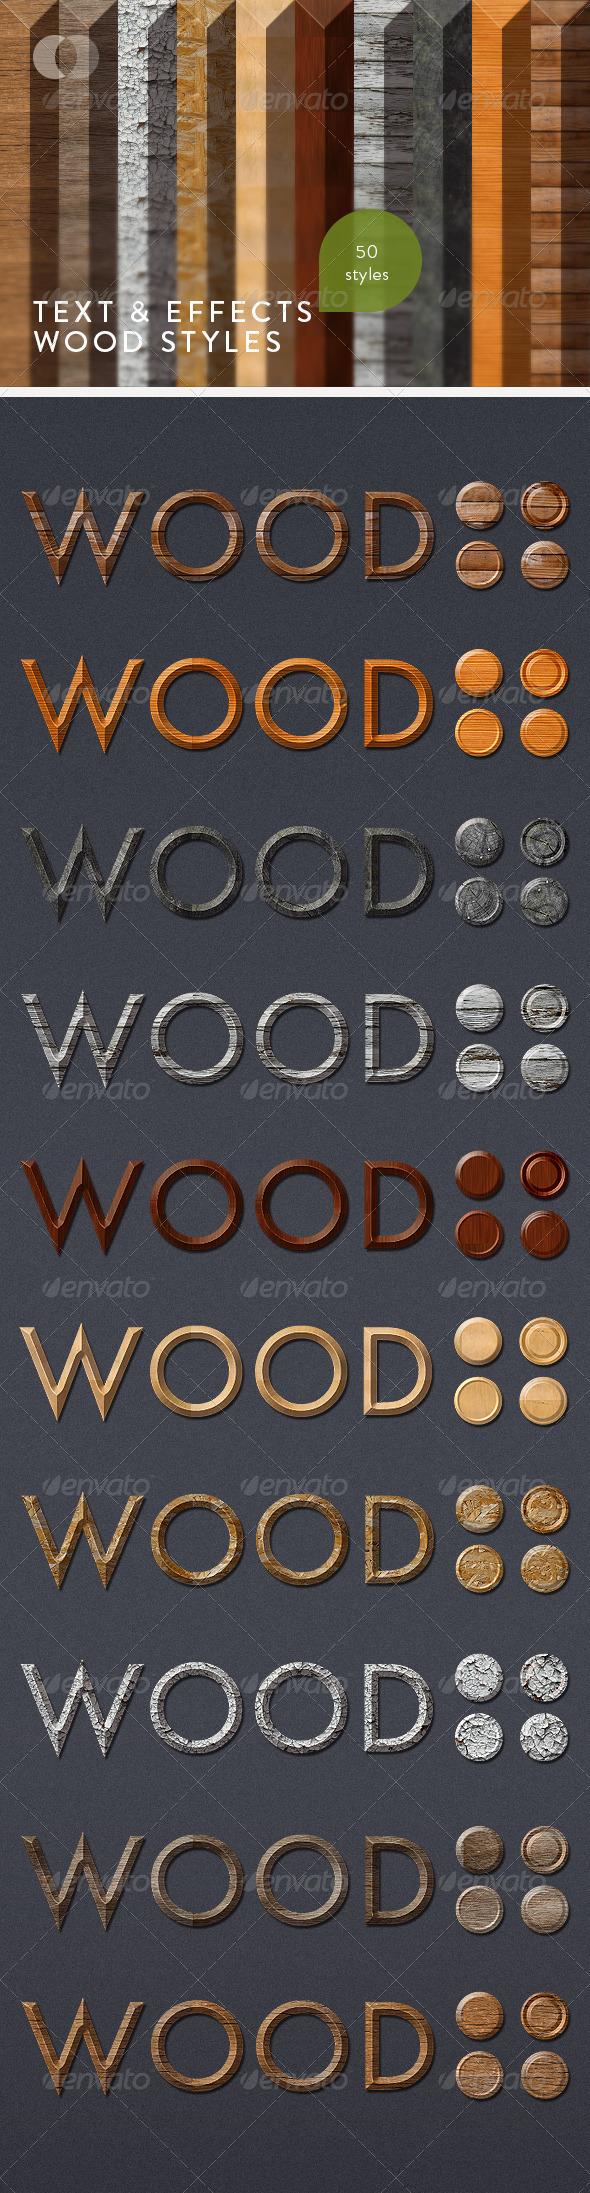 GraphicRiver Text & Effects Wood Styles 161277